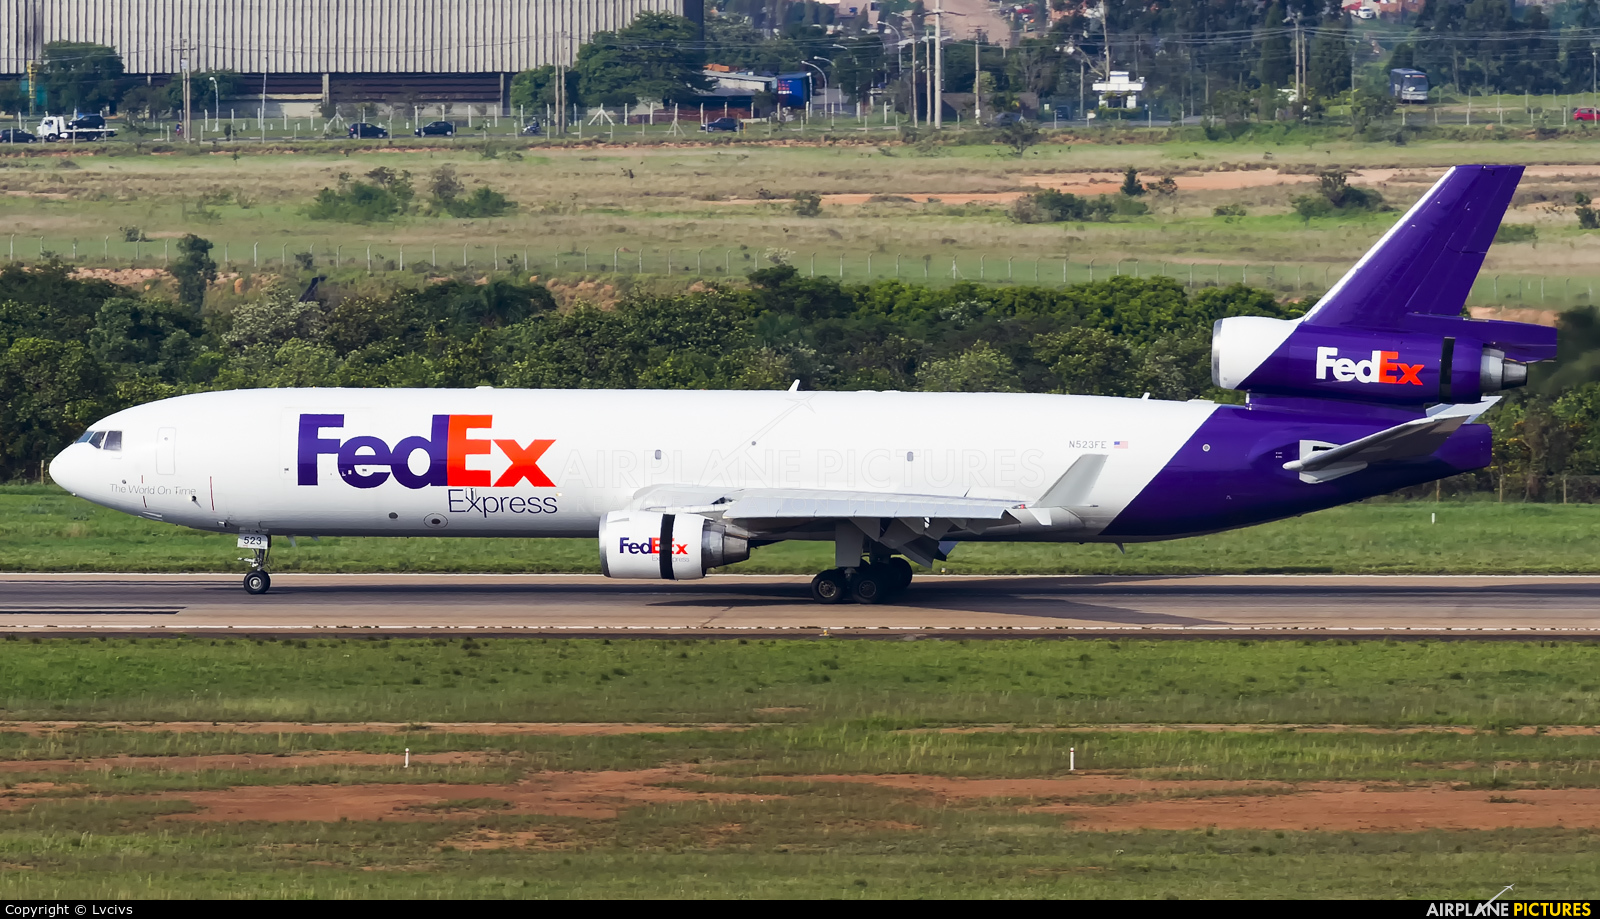 a history of the establishment of federal express Fedex corp acquires tnt express — the largest acquisition in fedex history — significantly federal express officially adopts fedex as its brand.